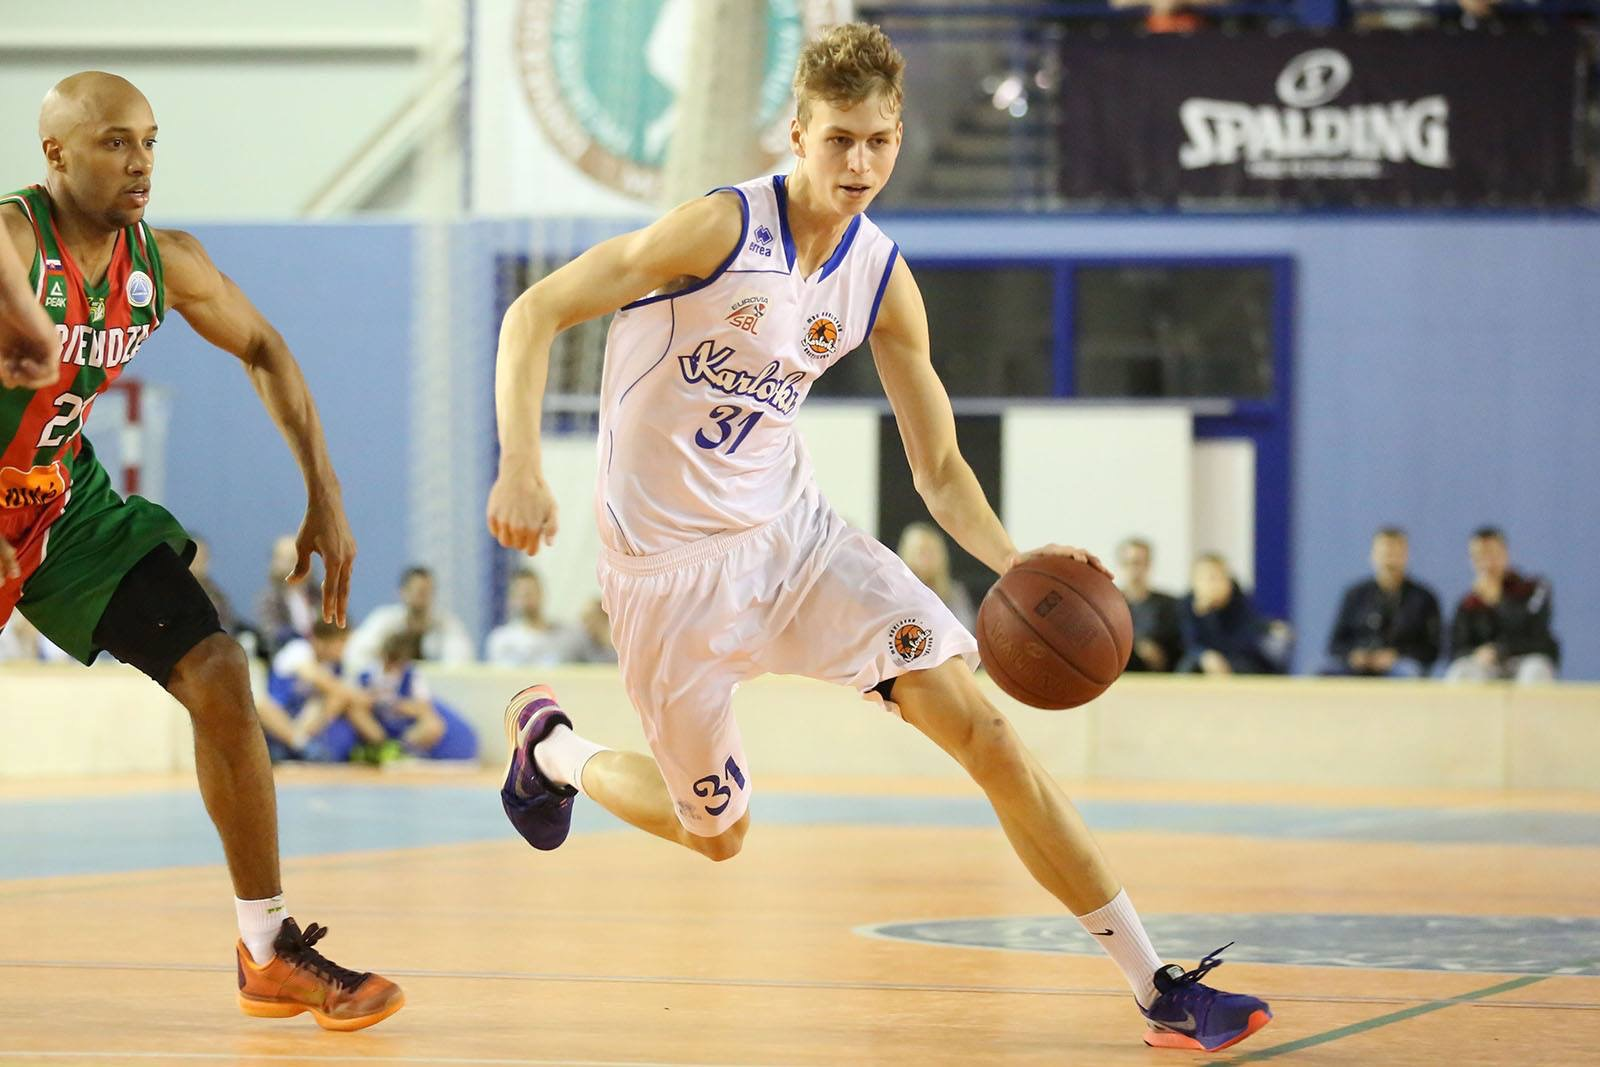 Marek Dolezaj has signed with Syracuse basketball; What's next for the Slovak star? | syracuse.com